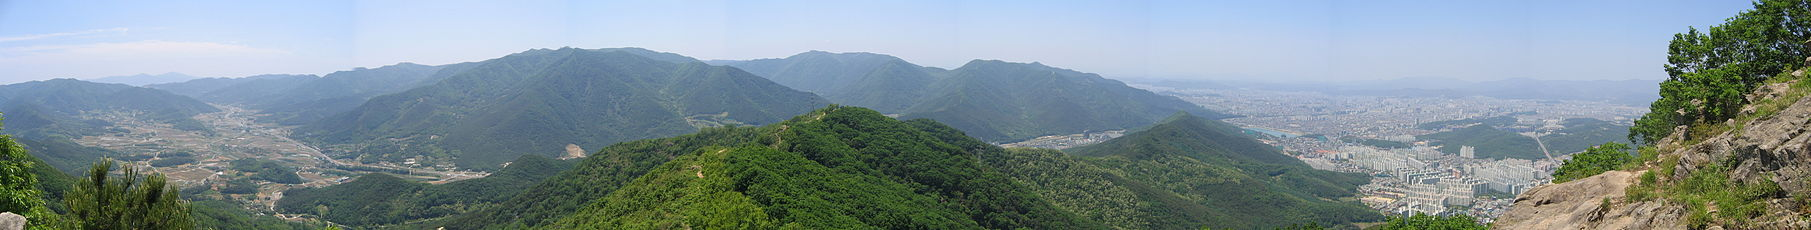 Gachang-myeon on the left and Jisan-dong, Beomul-dong on the right